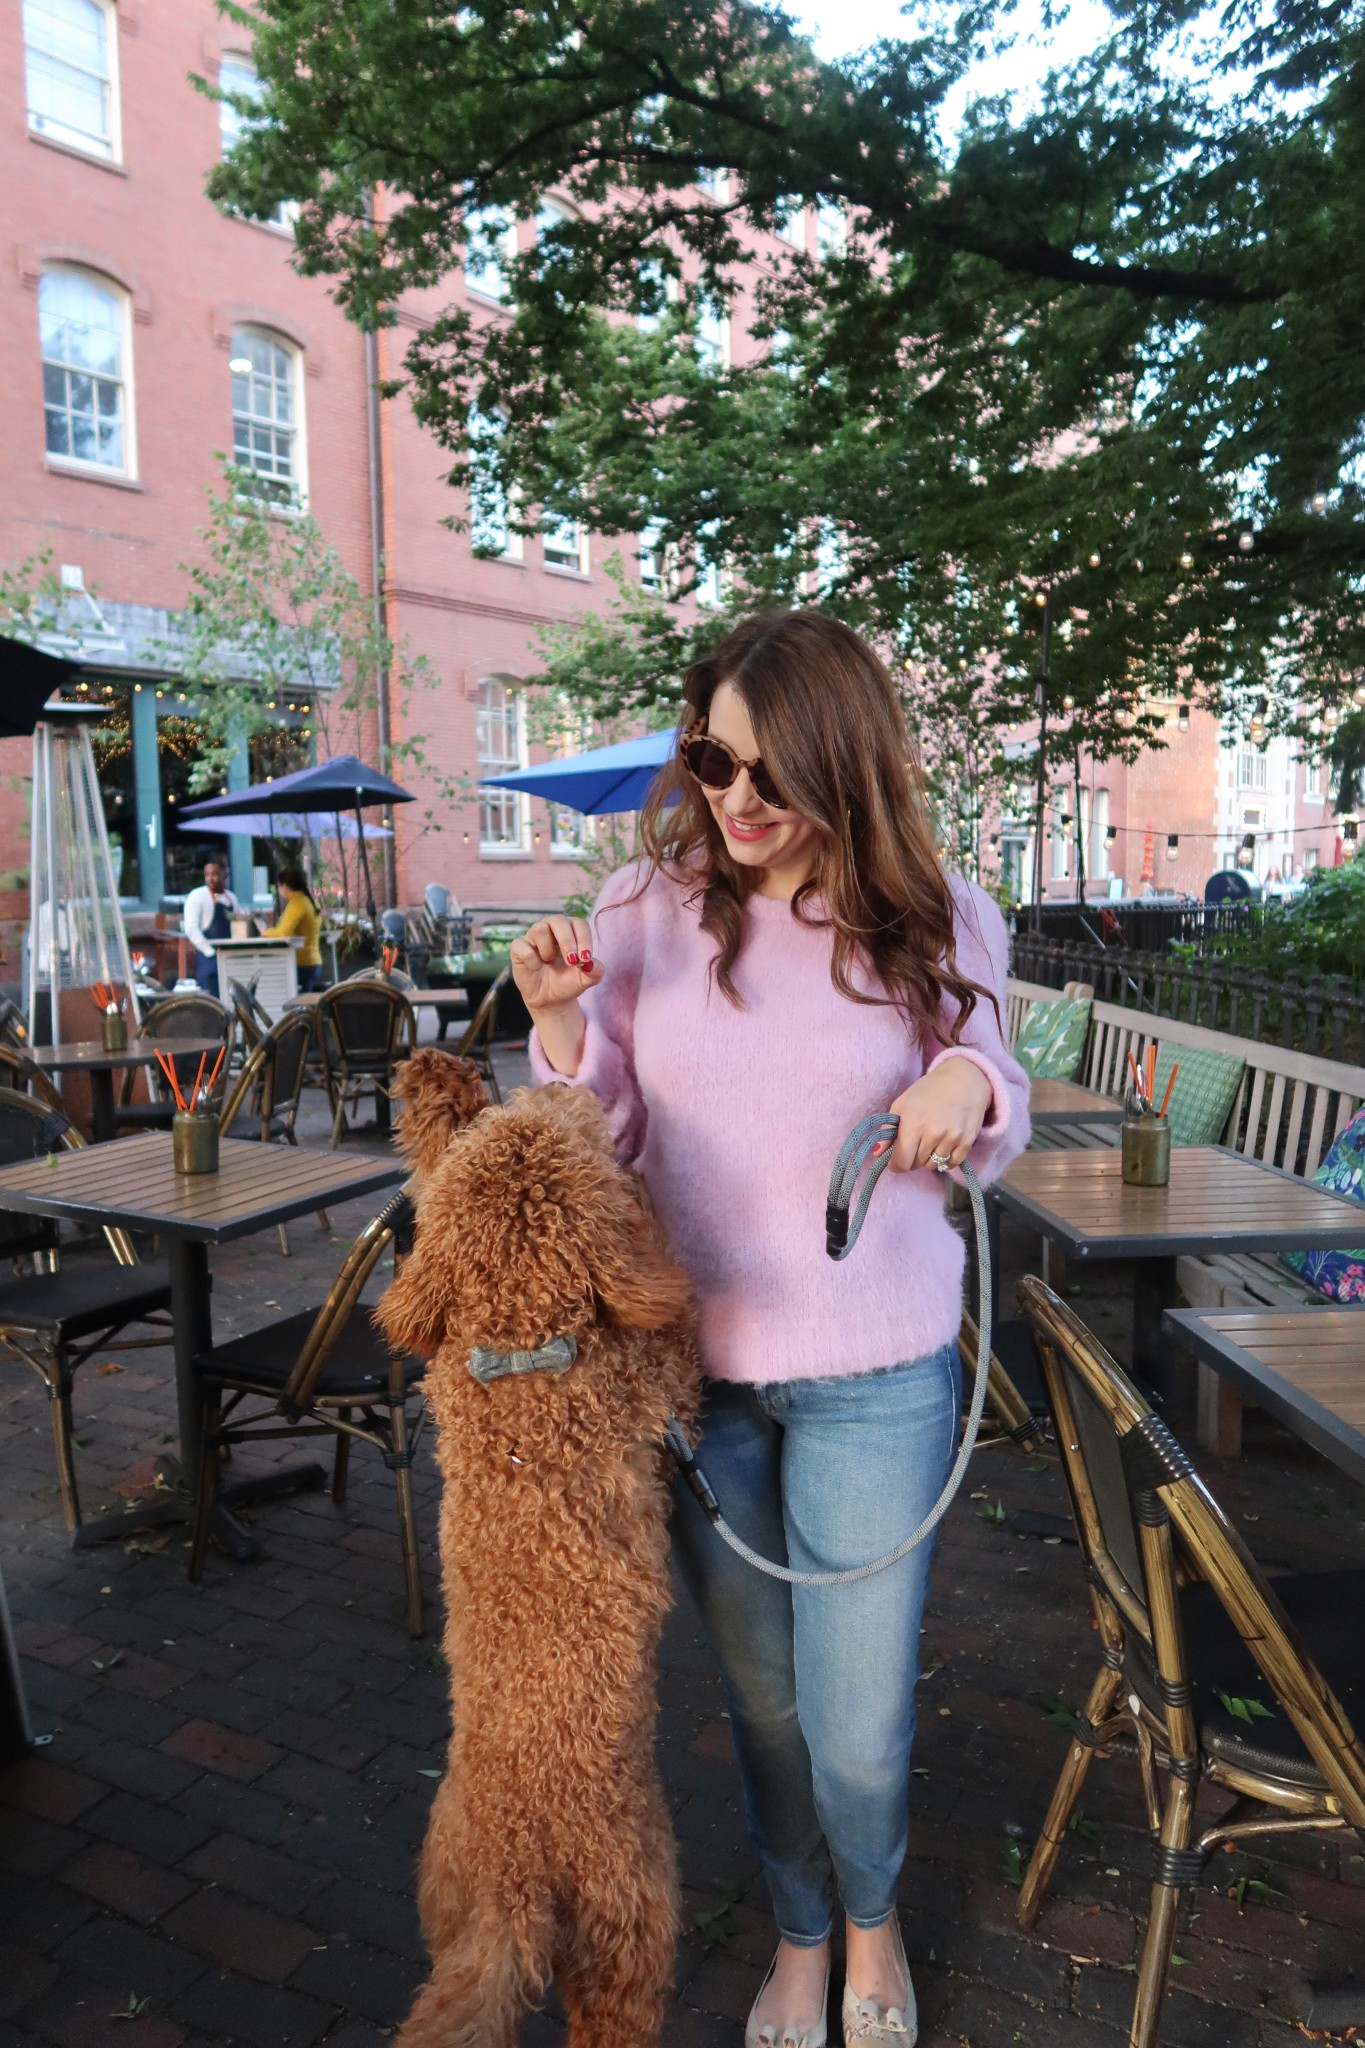 dog friendly patios in boston, the-alyst.com